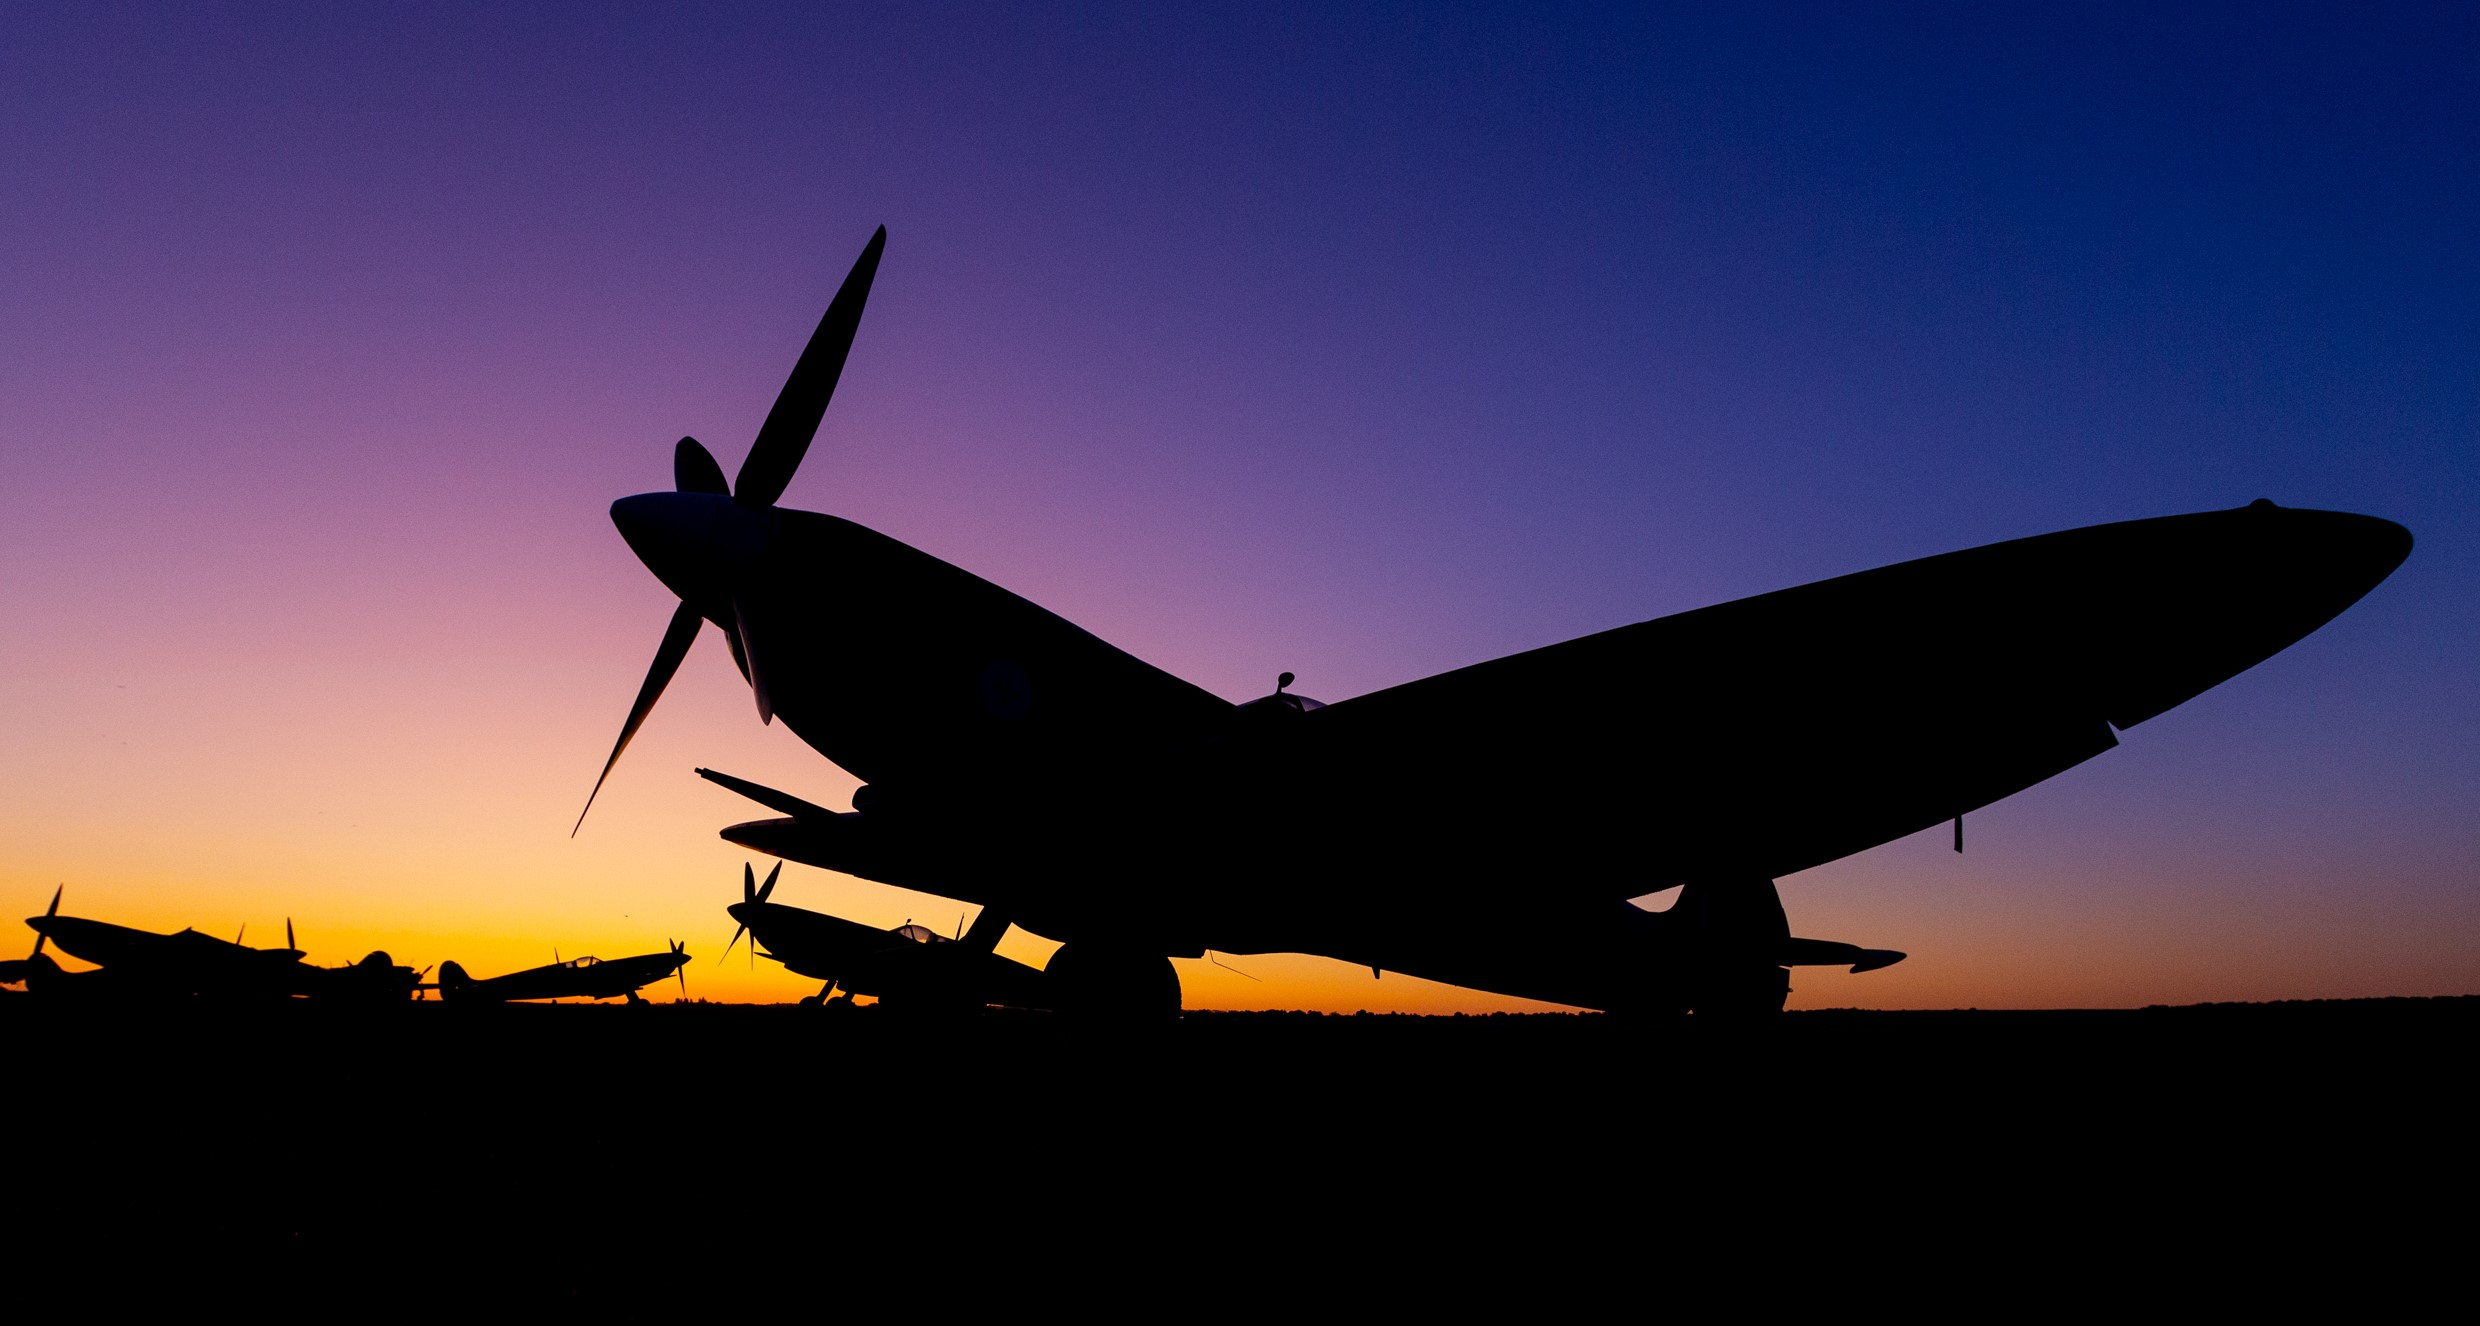 Spitfire silhouetted against the sunset